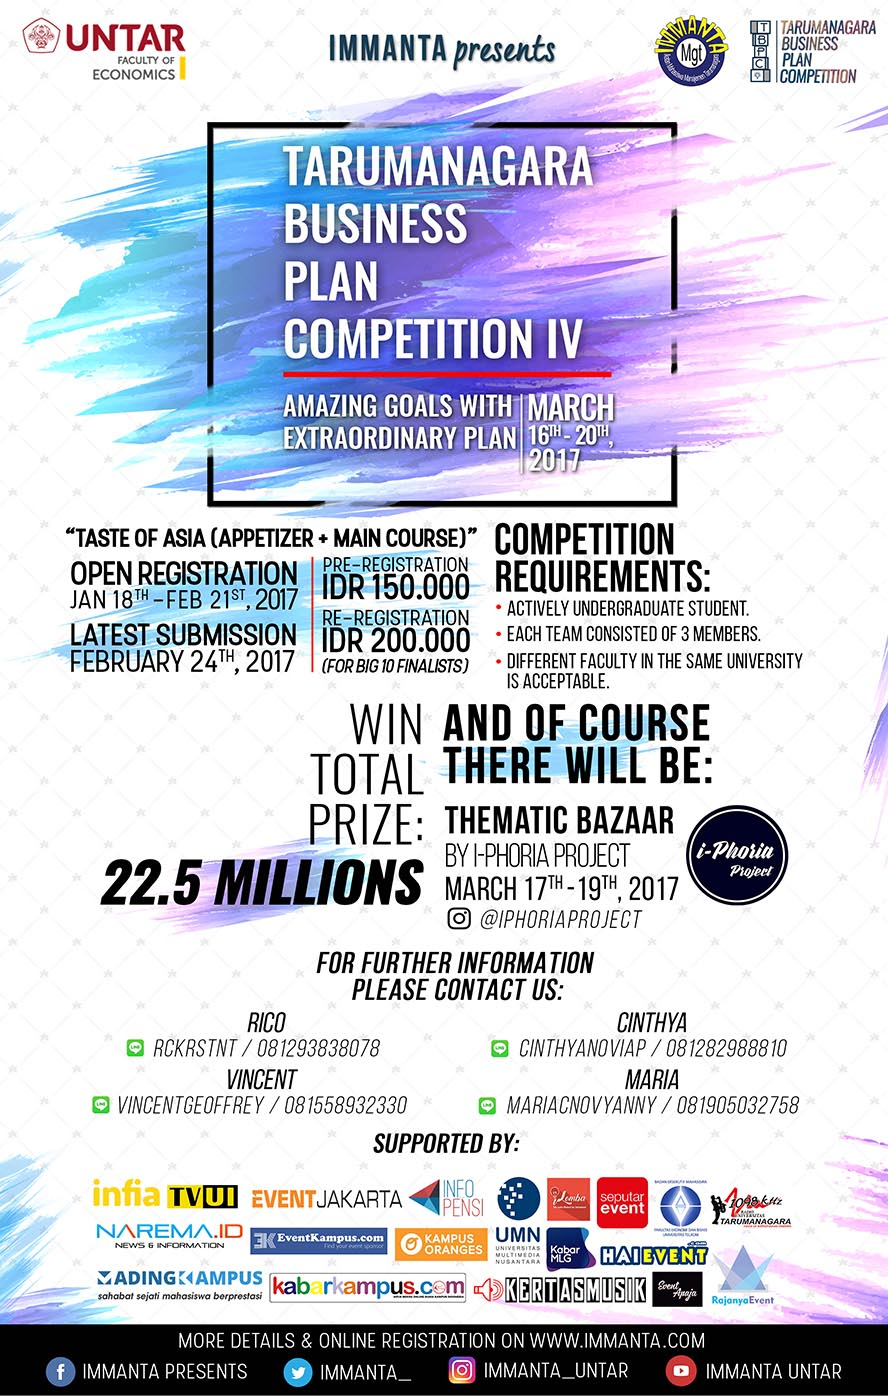 Tarumanagara Business Plan Competition IV - UNTAR, 16 - 21 Maret 2017